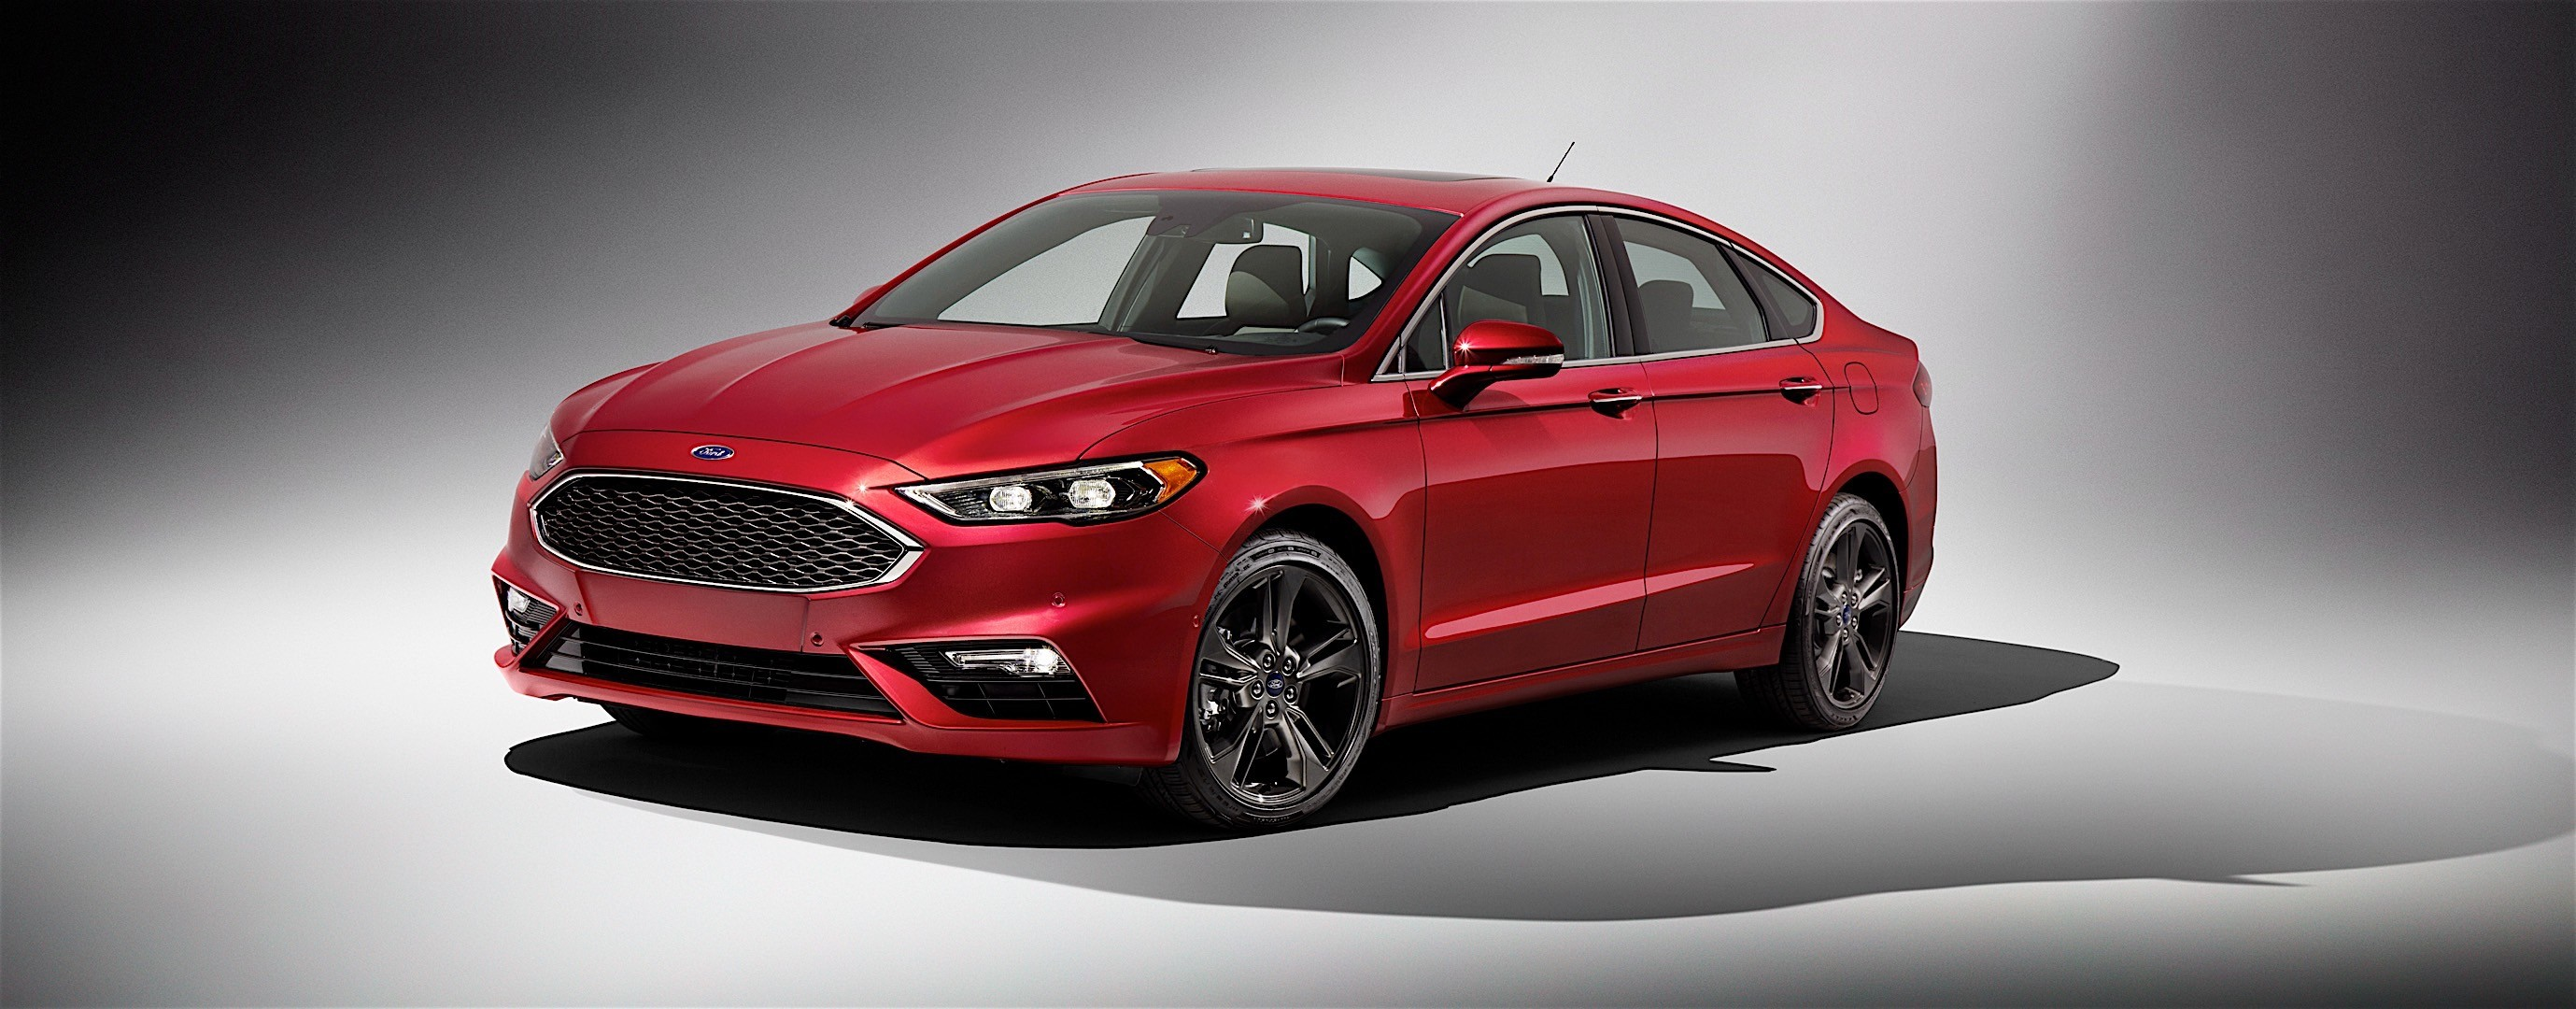 ford fusion north american specs 2016 2017 2018 autoevolution. Black Bedroom Furniture Sets. Home Design Ideas